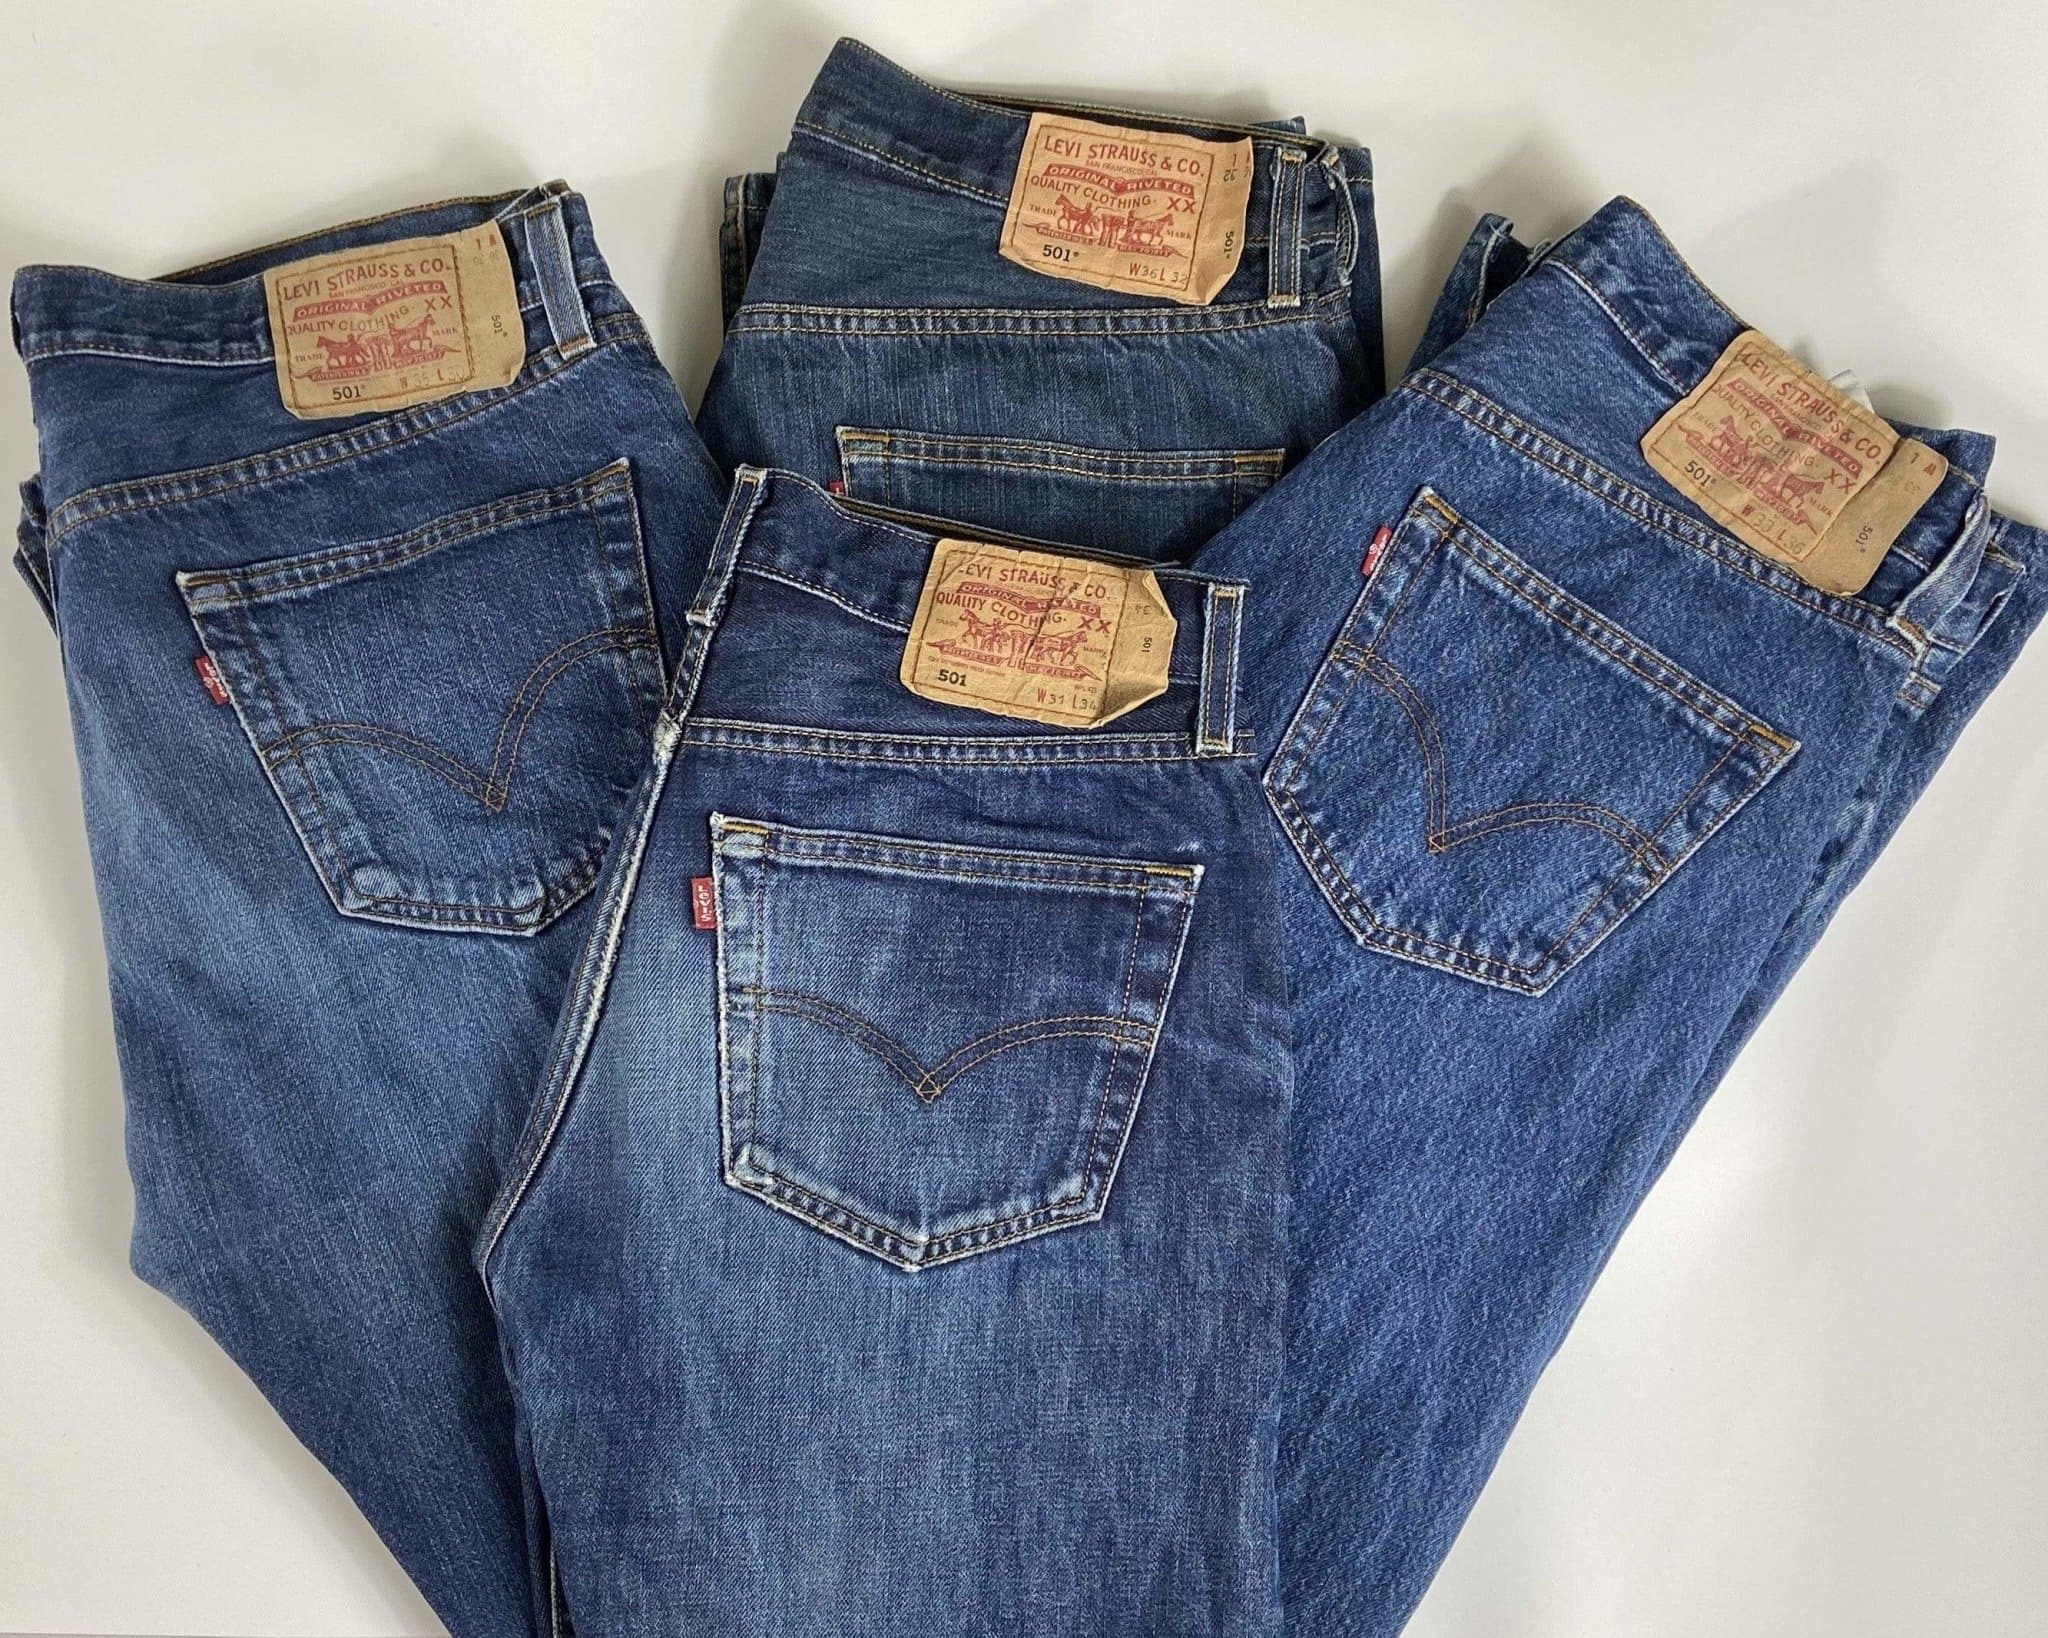 Vintage Levi's Classic 501 Jeans W33 L32 (DHLB4) - Discounted Deals UK